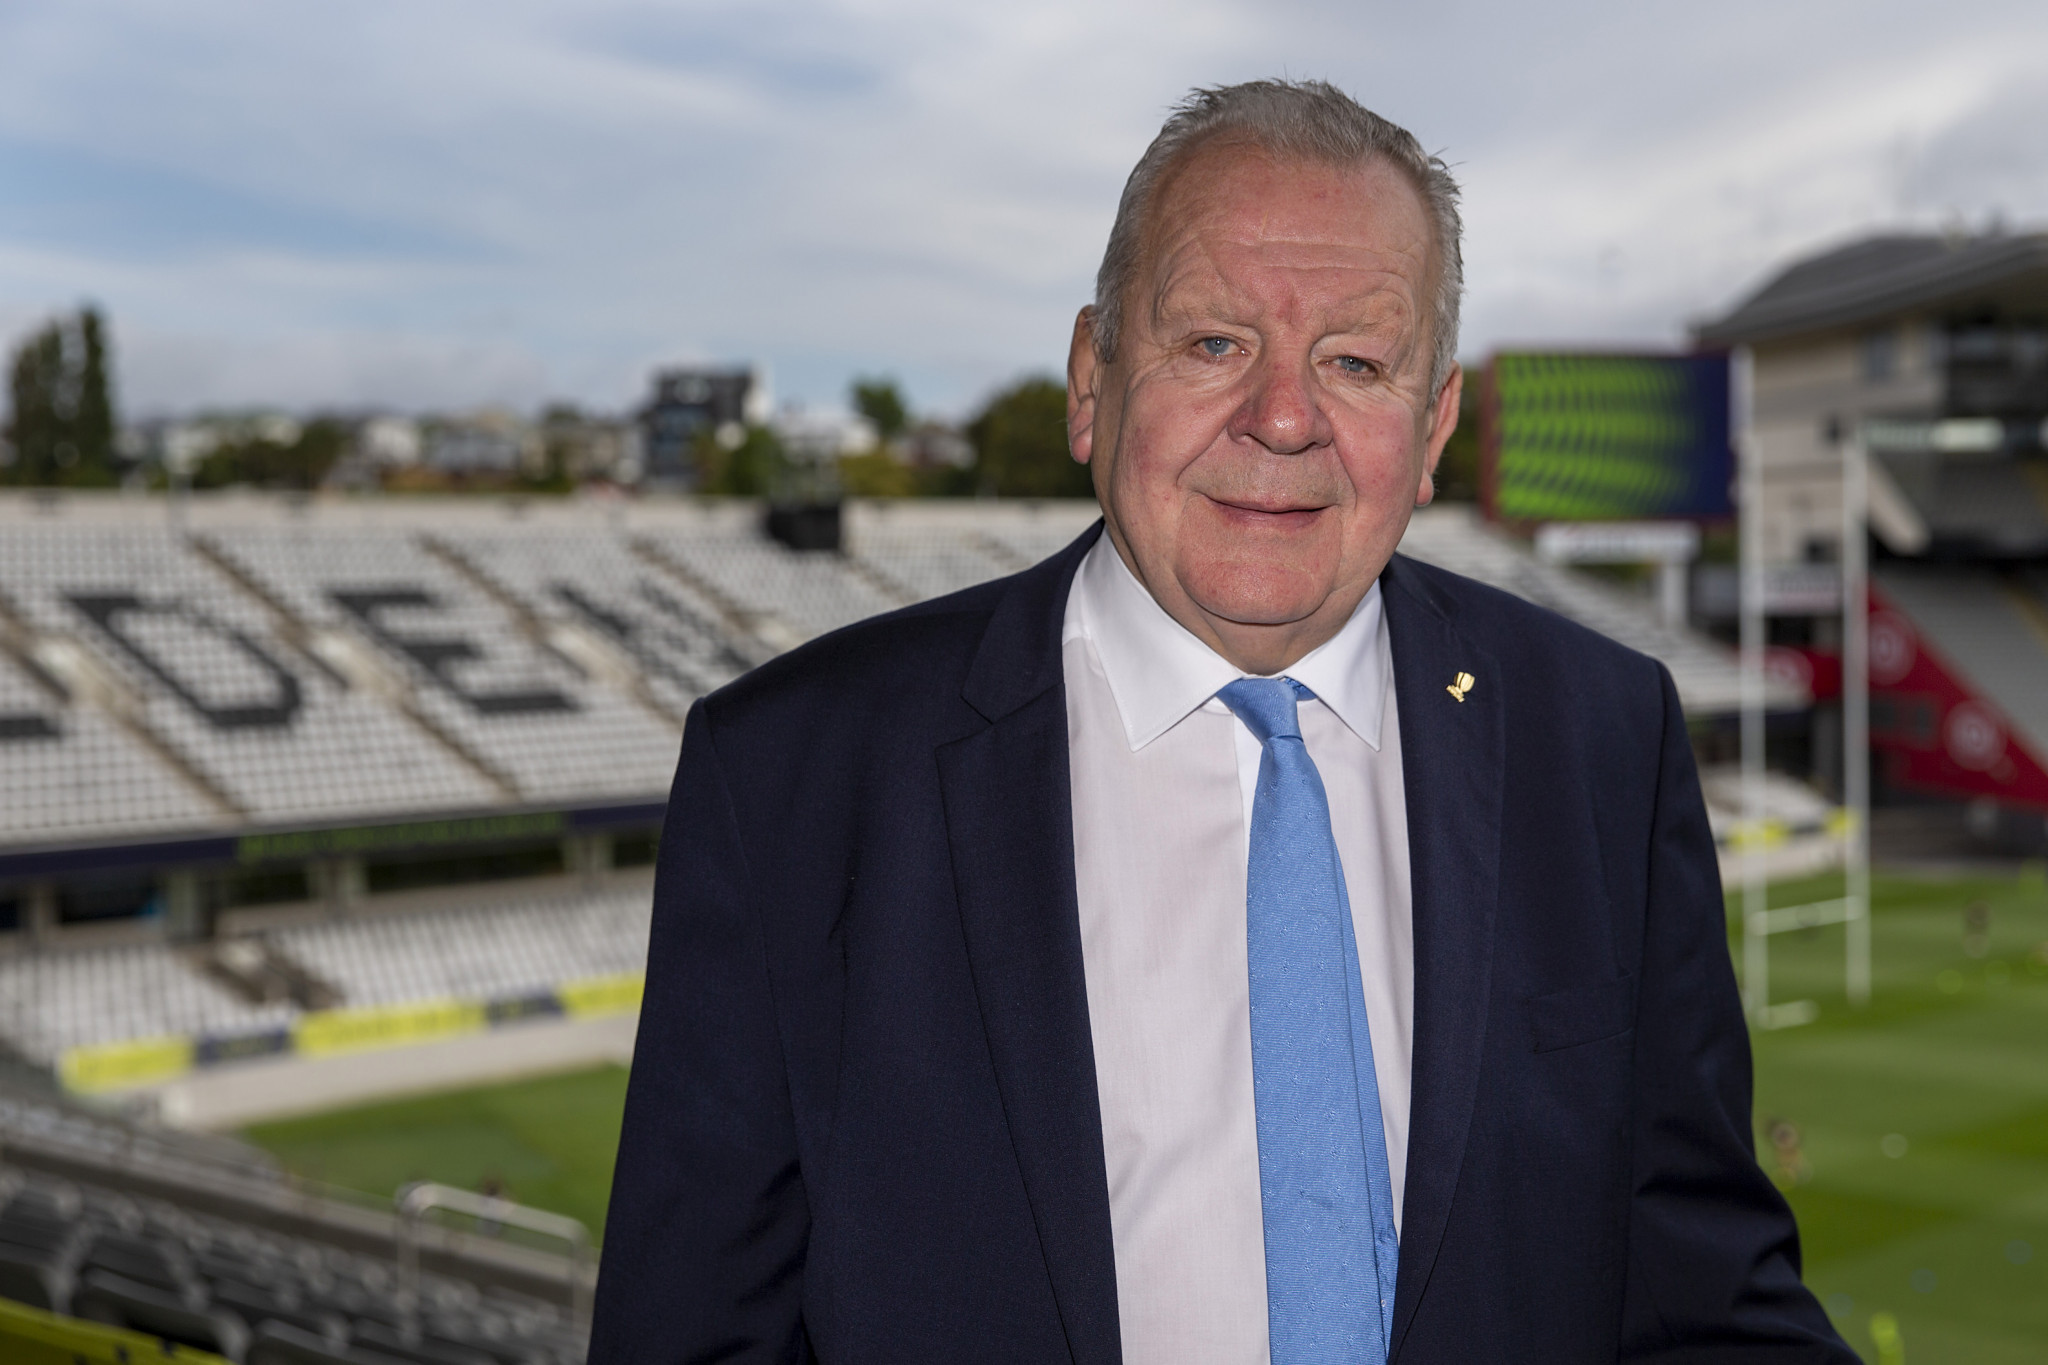 World Rugby President Sir Bill Beaumont outlines re-election manifesto